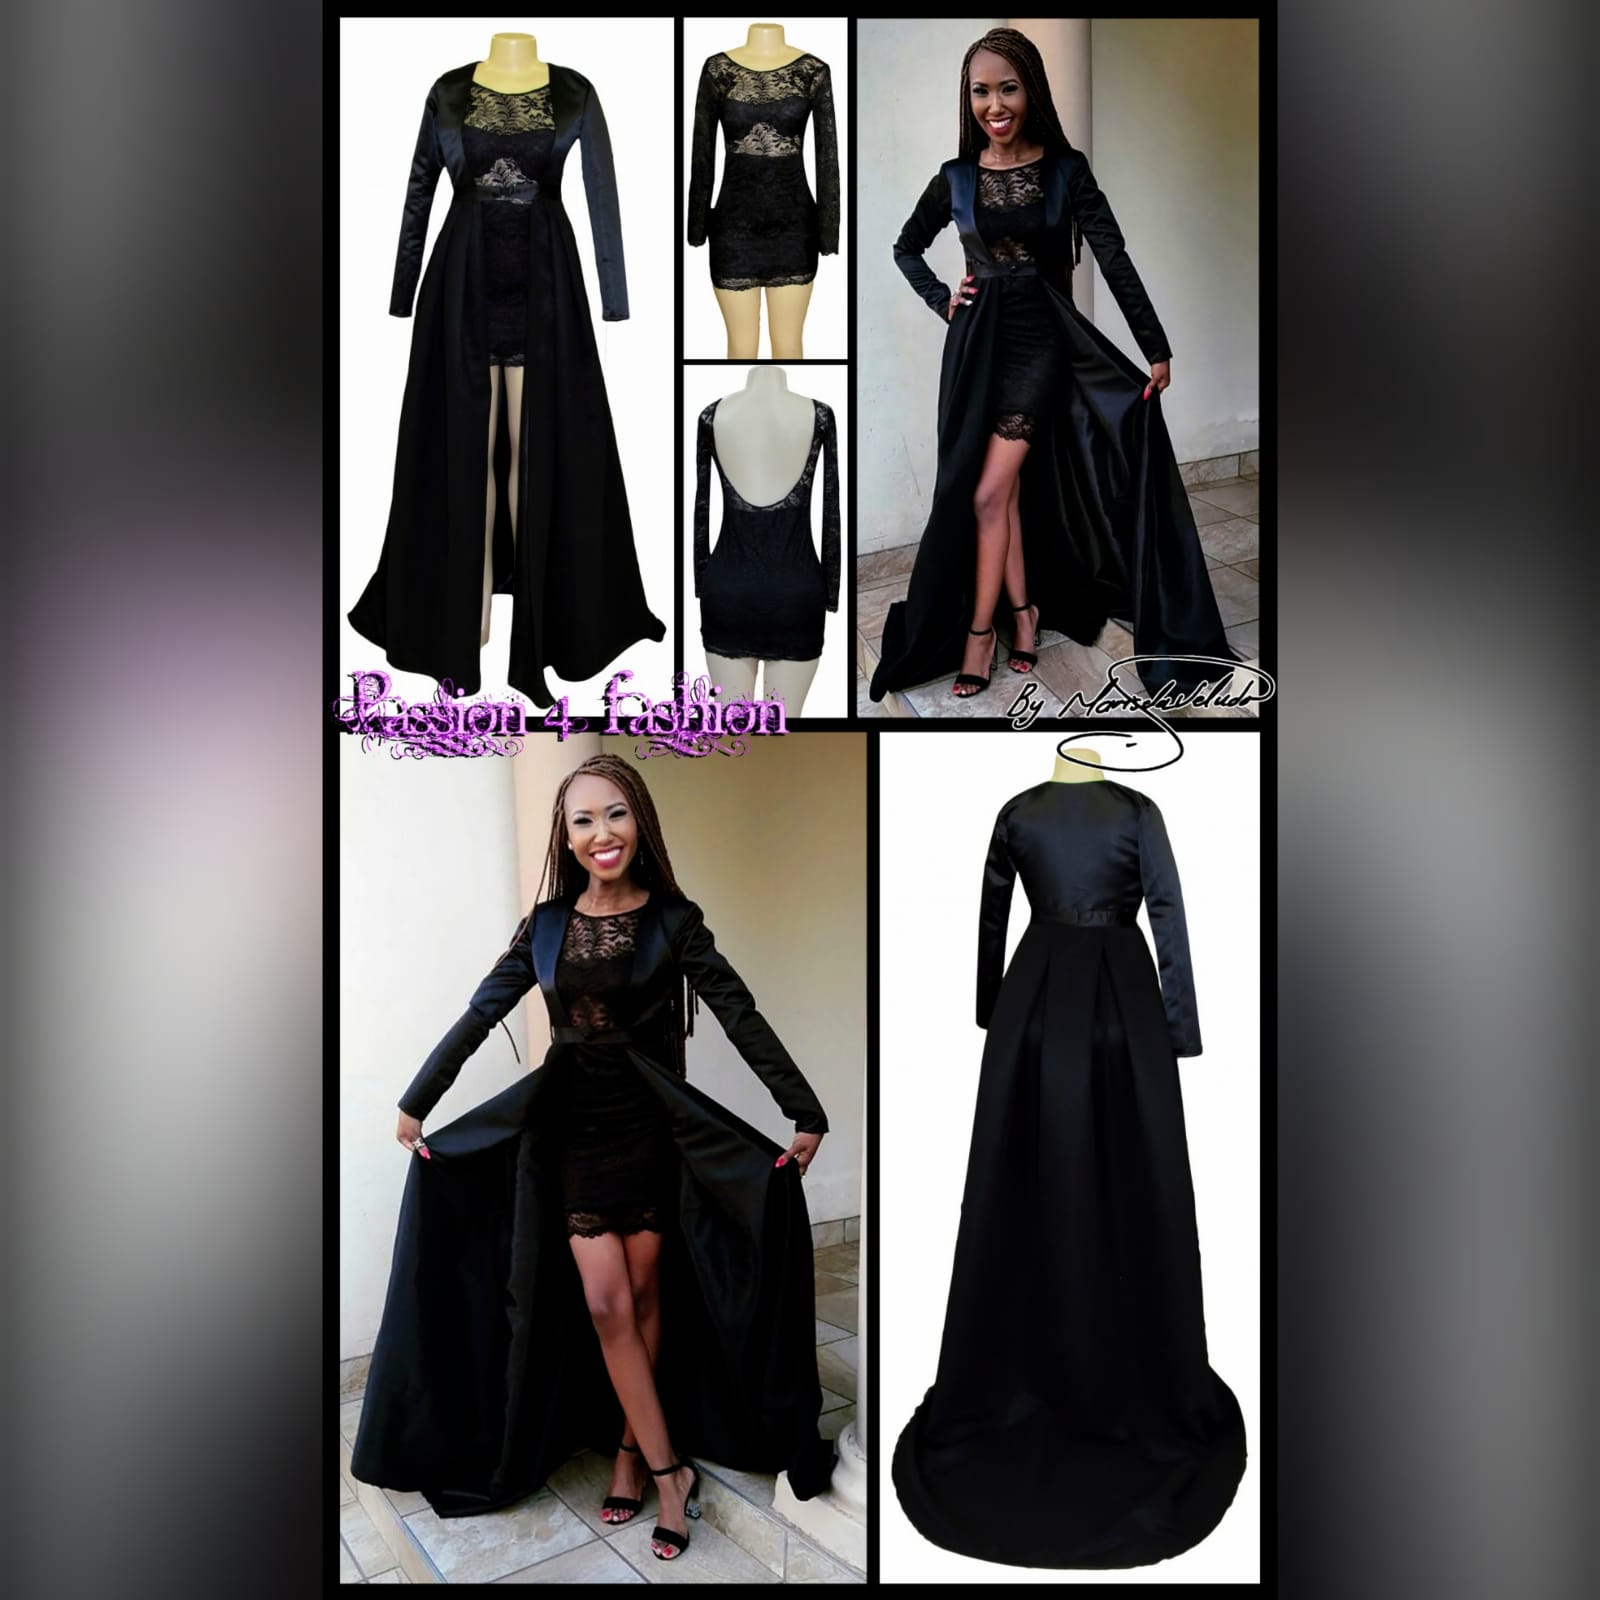 2 piece black lace mini matric dance dress and coat 6 2 piece black lace mini matric dance dress and coat. Dress with rounded open back and a sheer lace bodice.